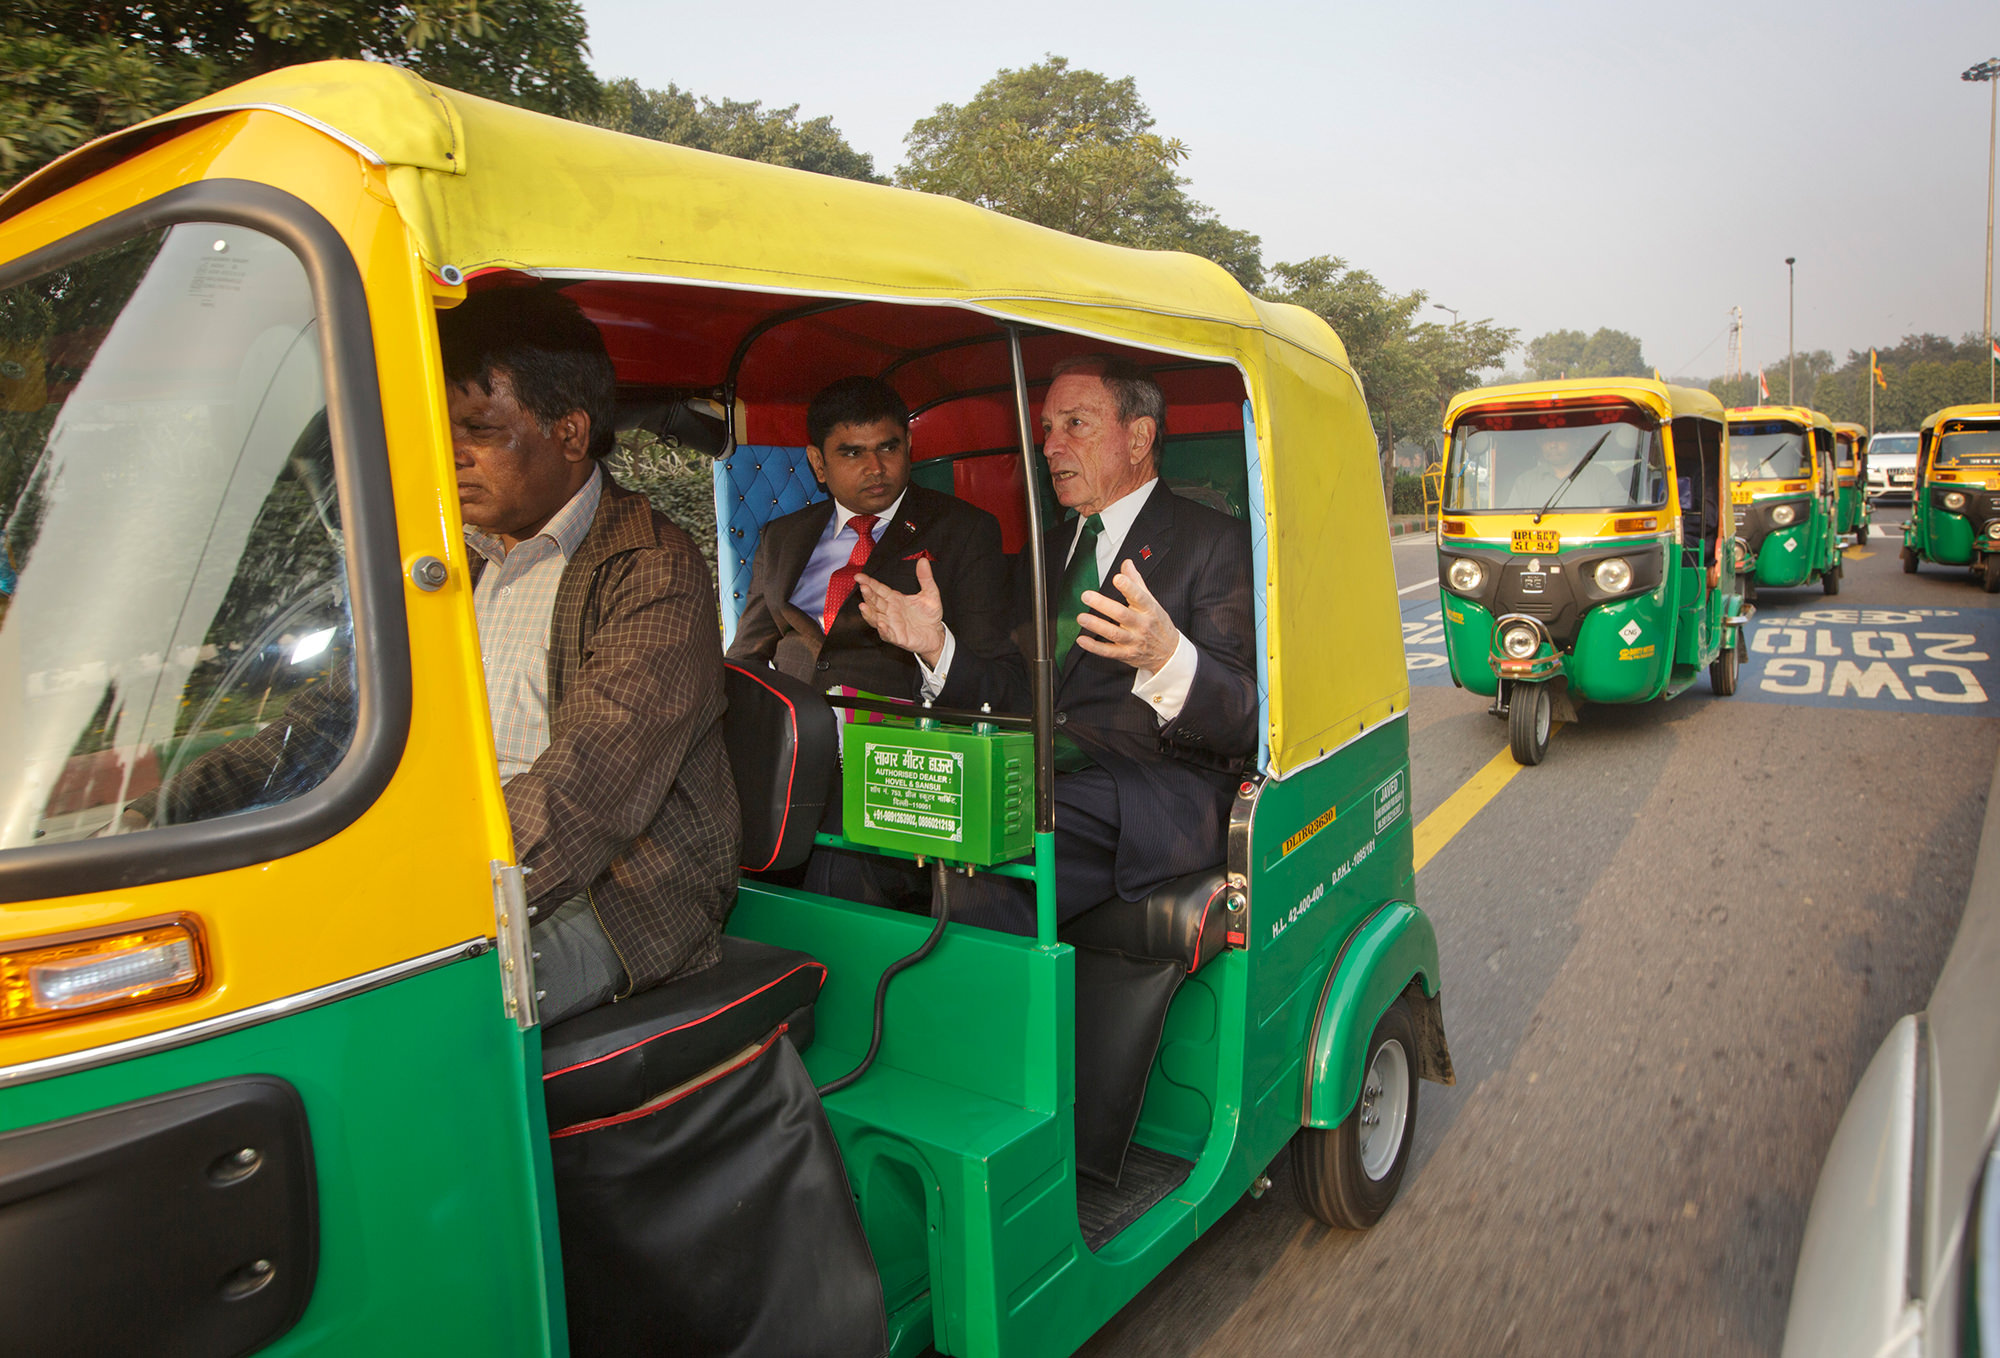 Mike Bloomberg in New Delhi, India to discuss the Smart Cities Challenge